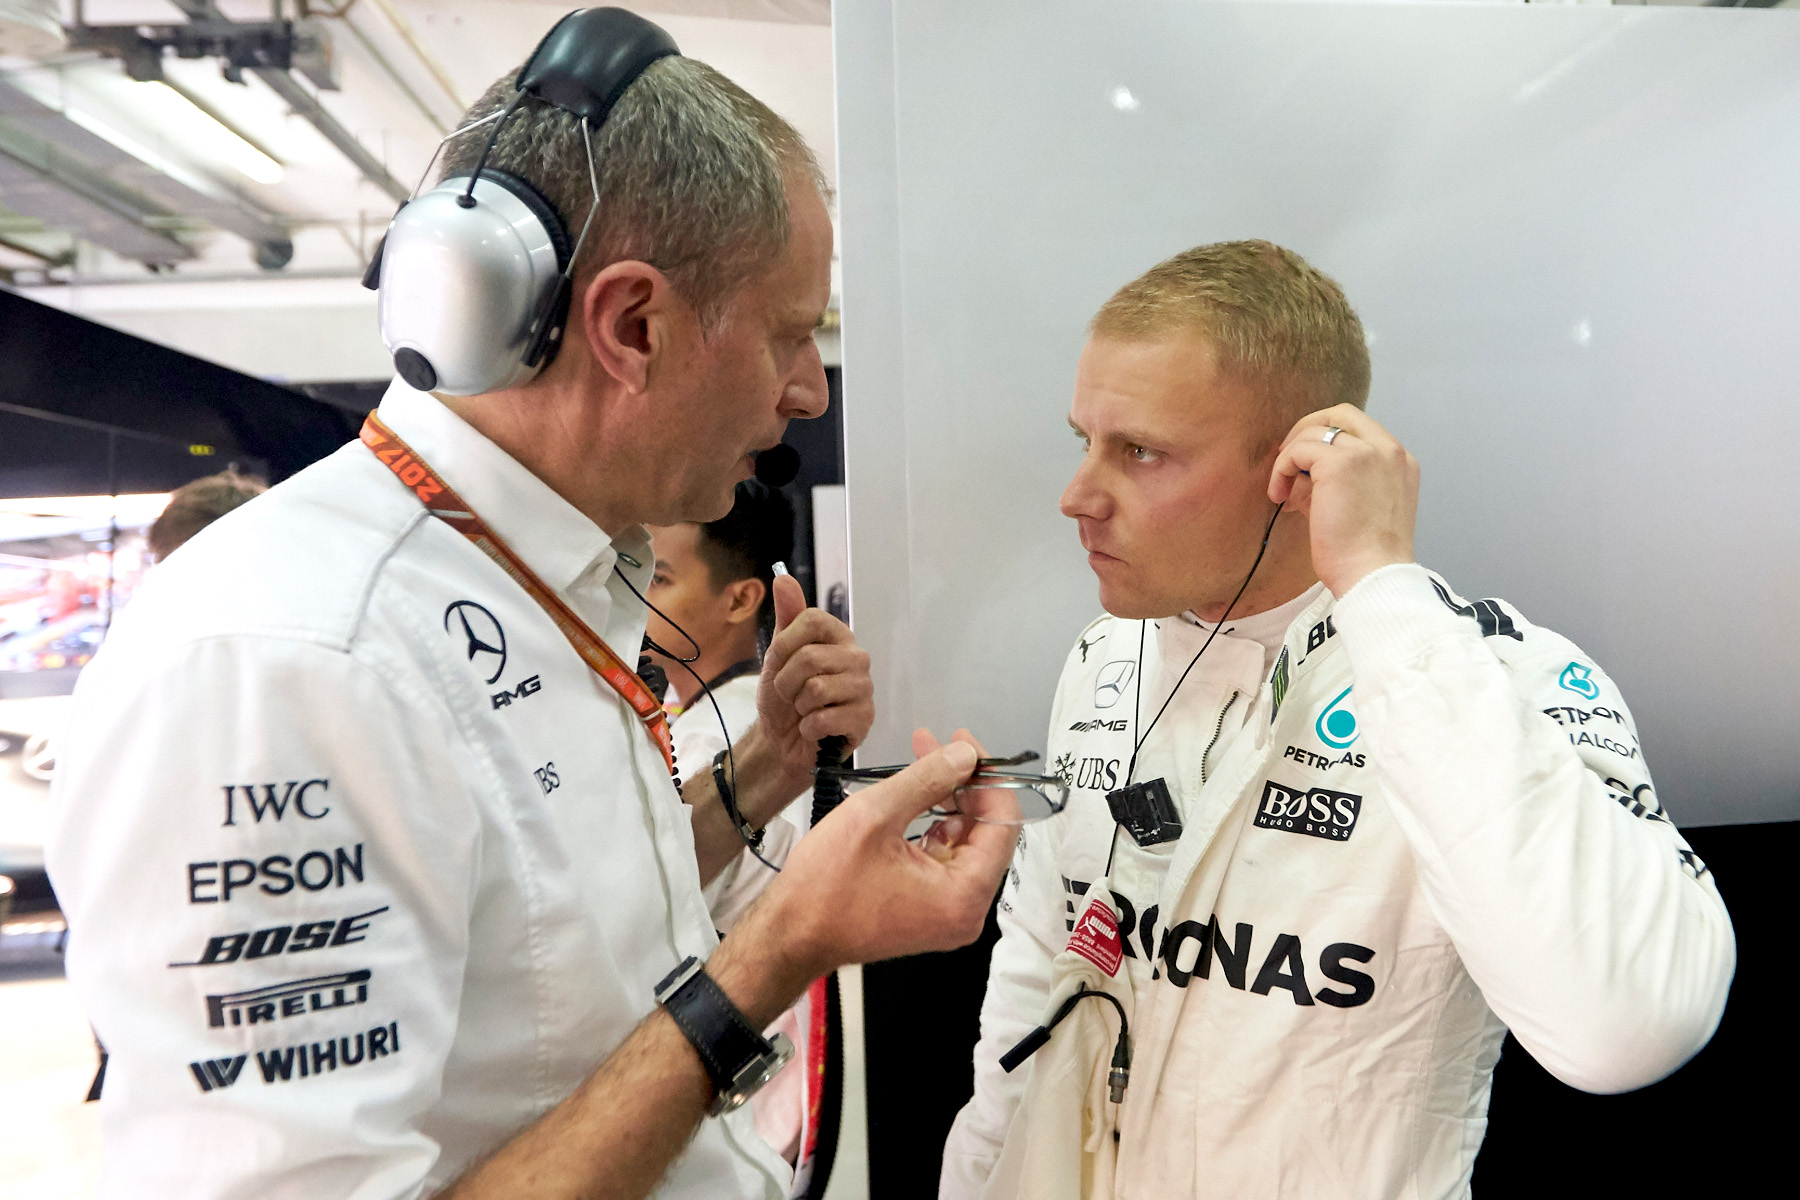 Valtteri Bottas talks to an engineer at the 2017 Malaysian Grand Prix.